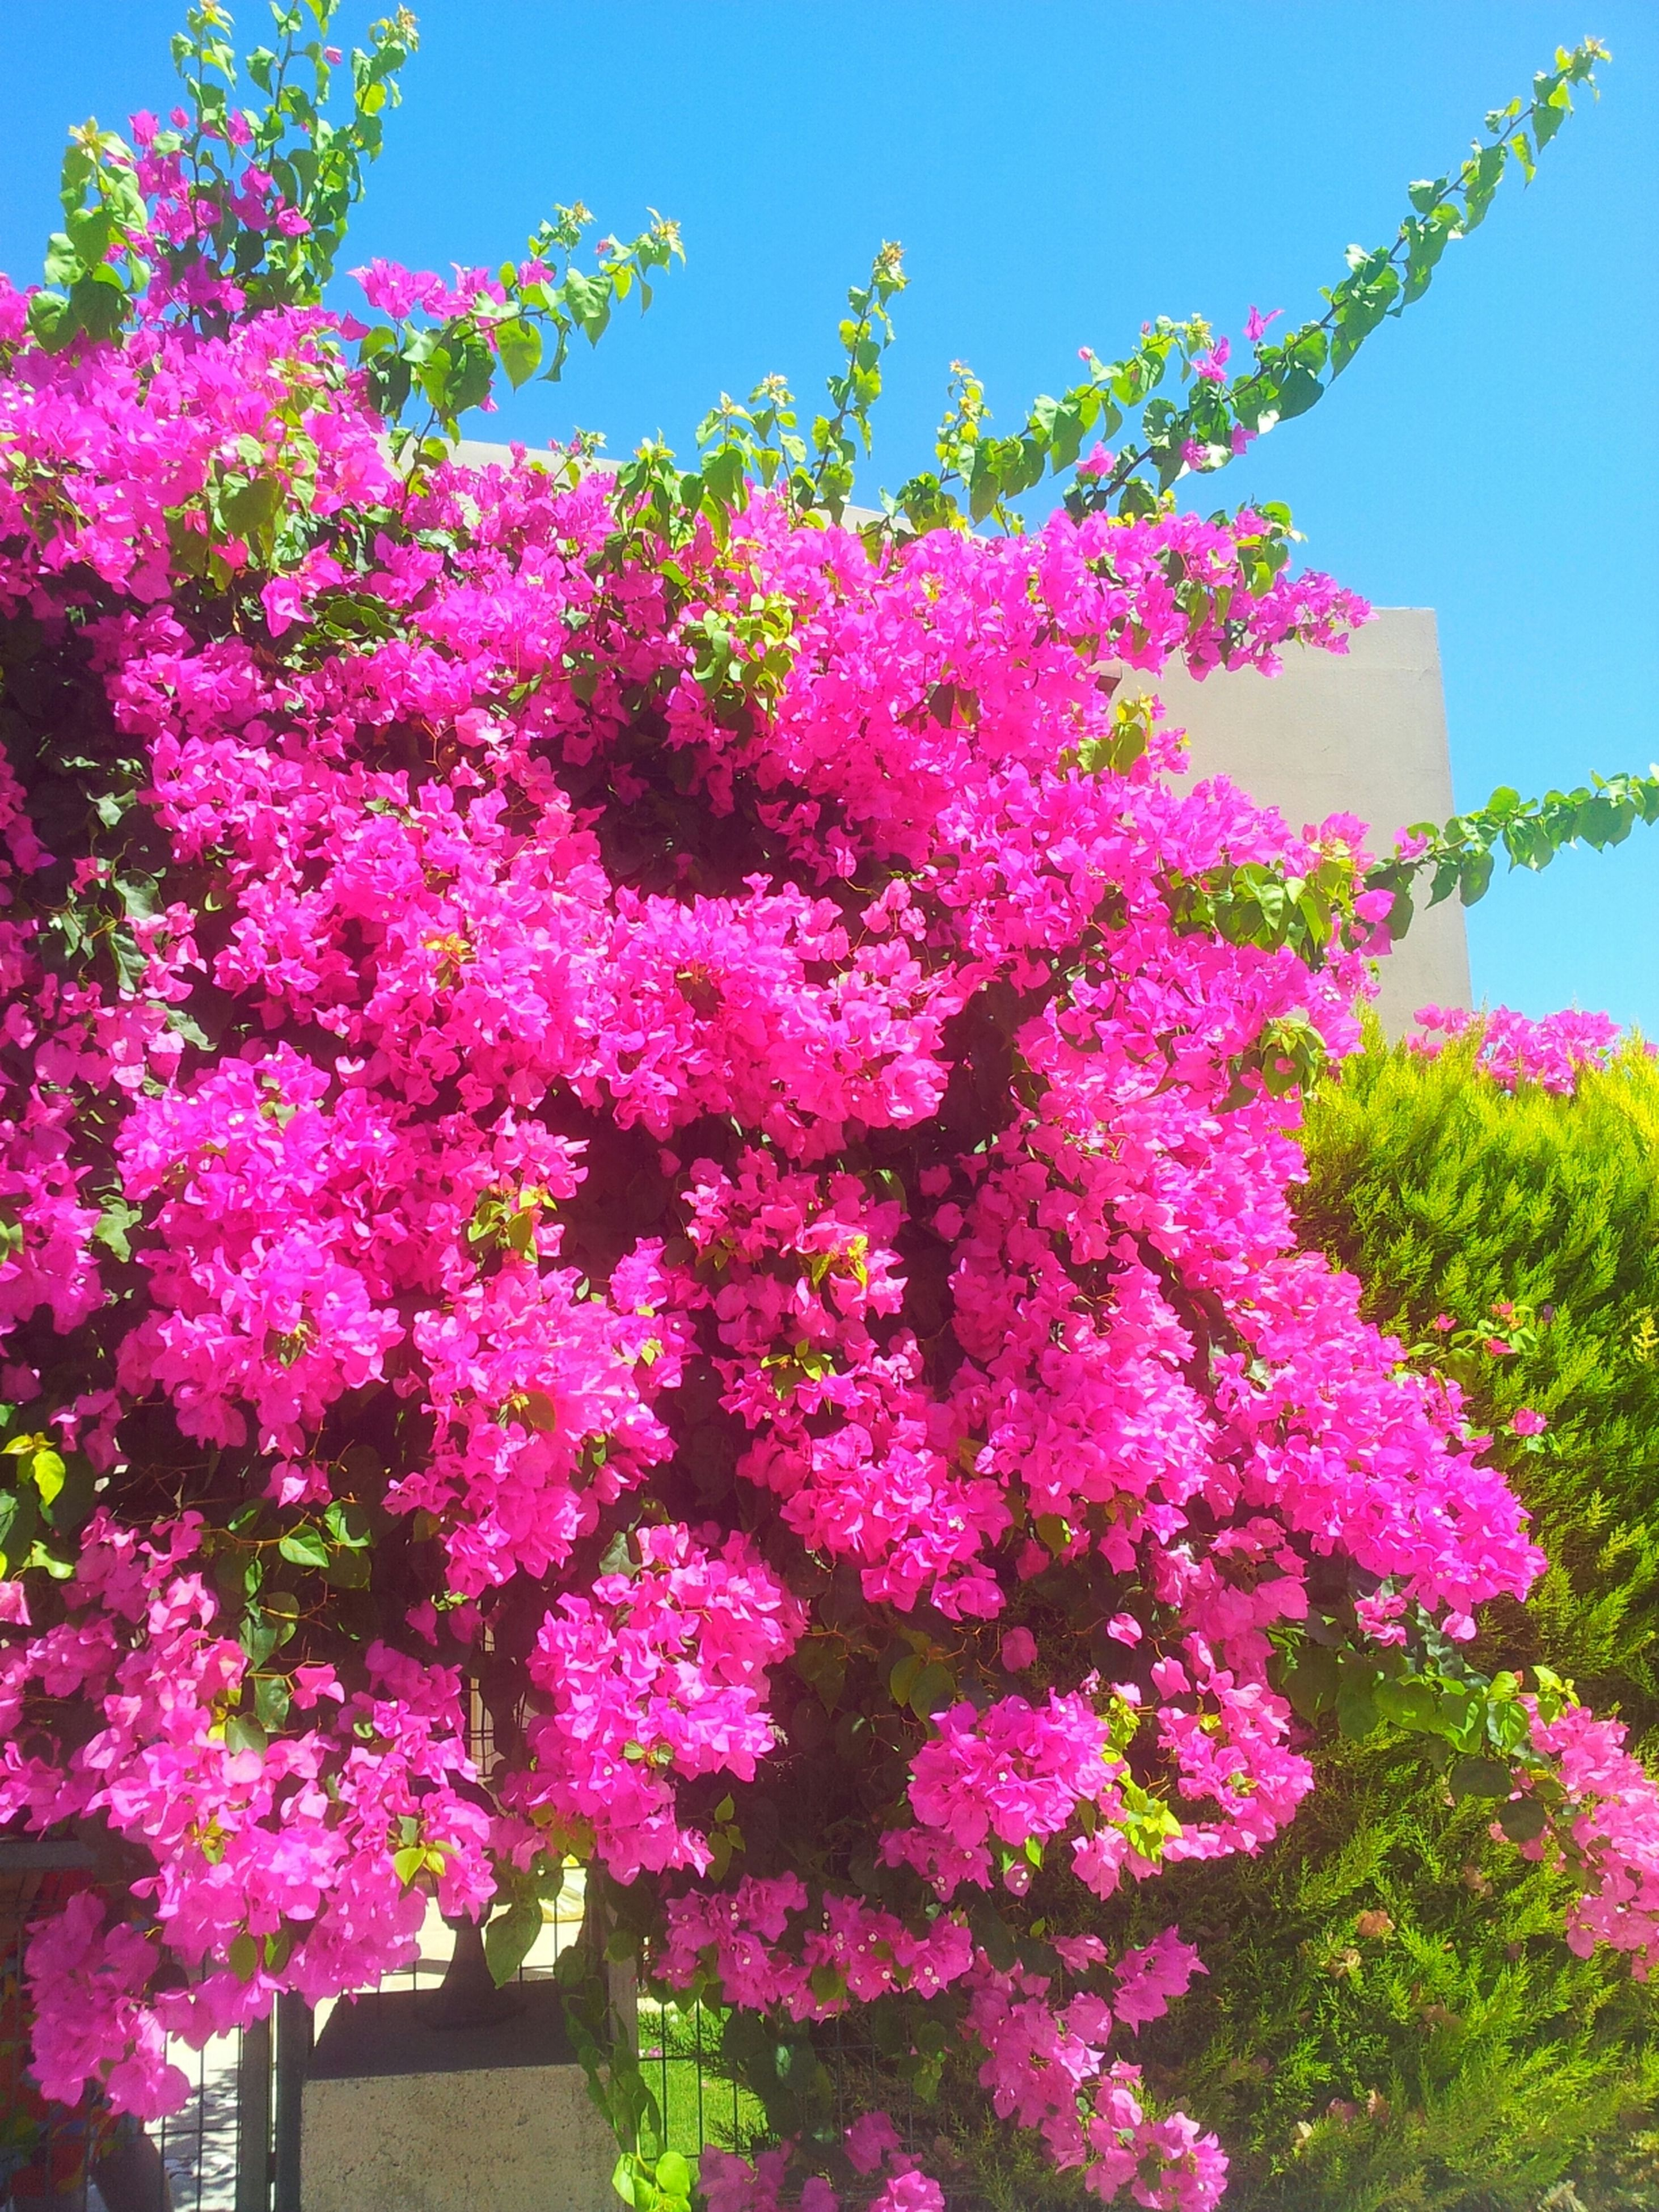 flower, freshness, growth, fragility, pink color, clear sky, beauty in nature, tree, blooming, low angle view, nature, blossom, petal, in bloom, sunlight, plant, pink, blue, springtime, sky